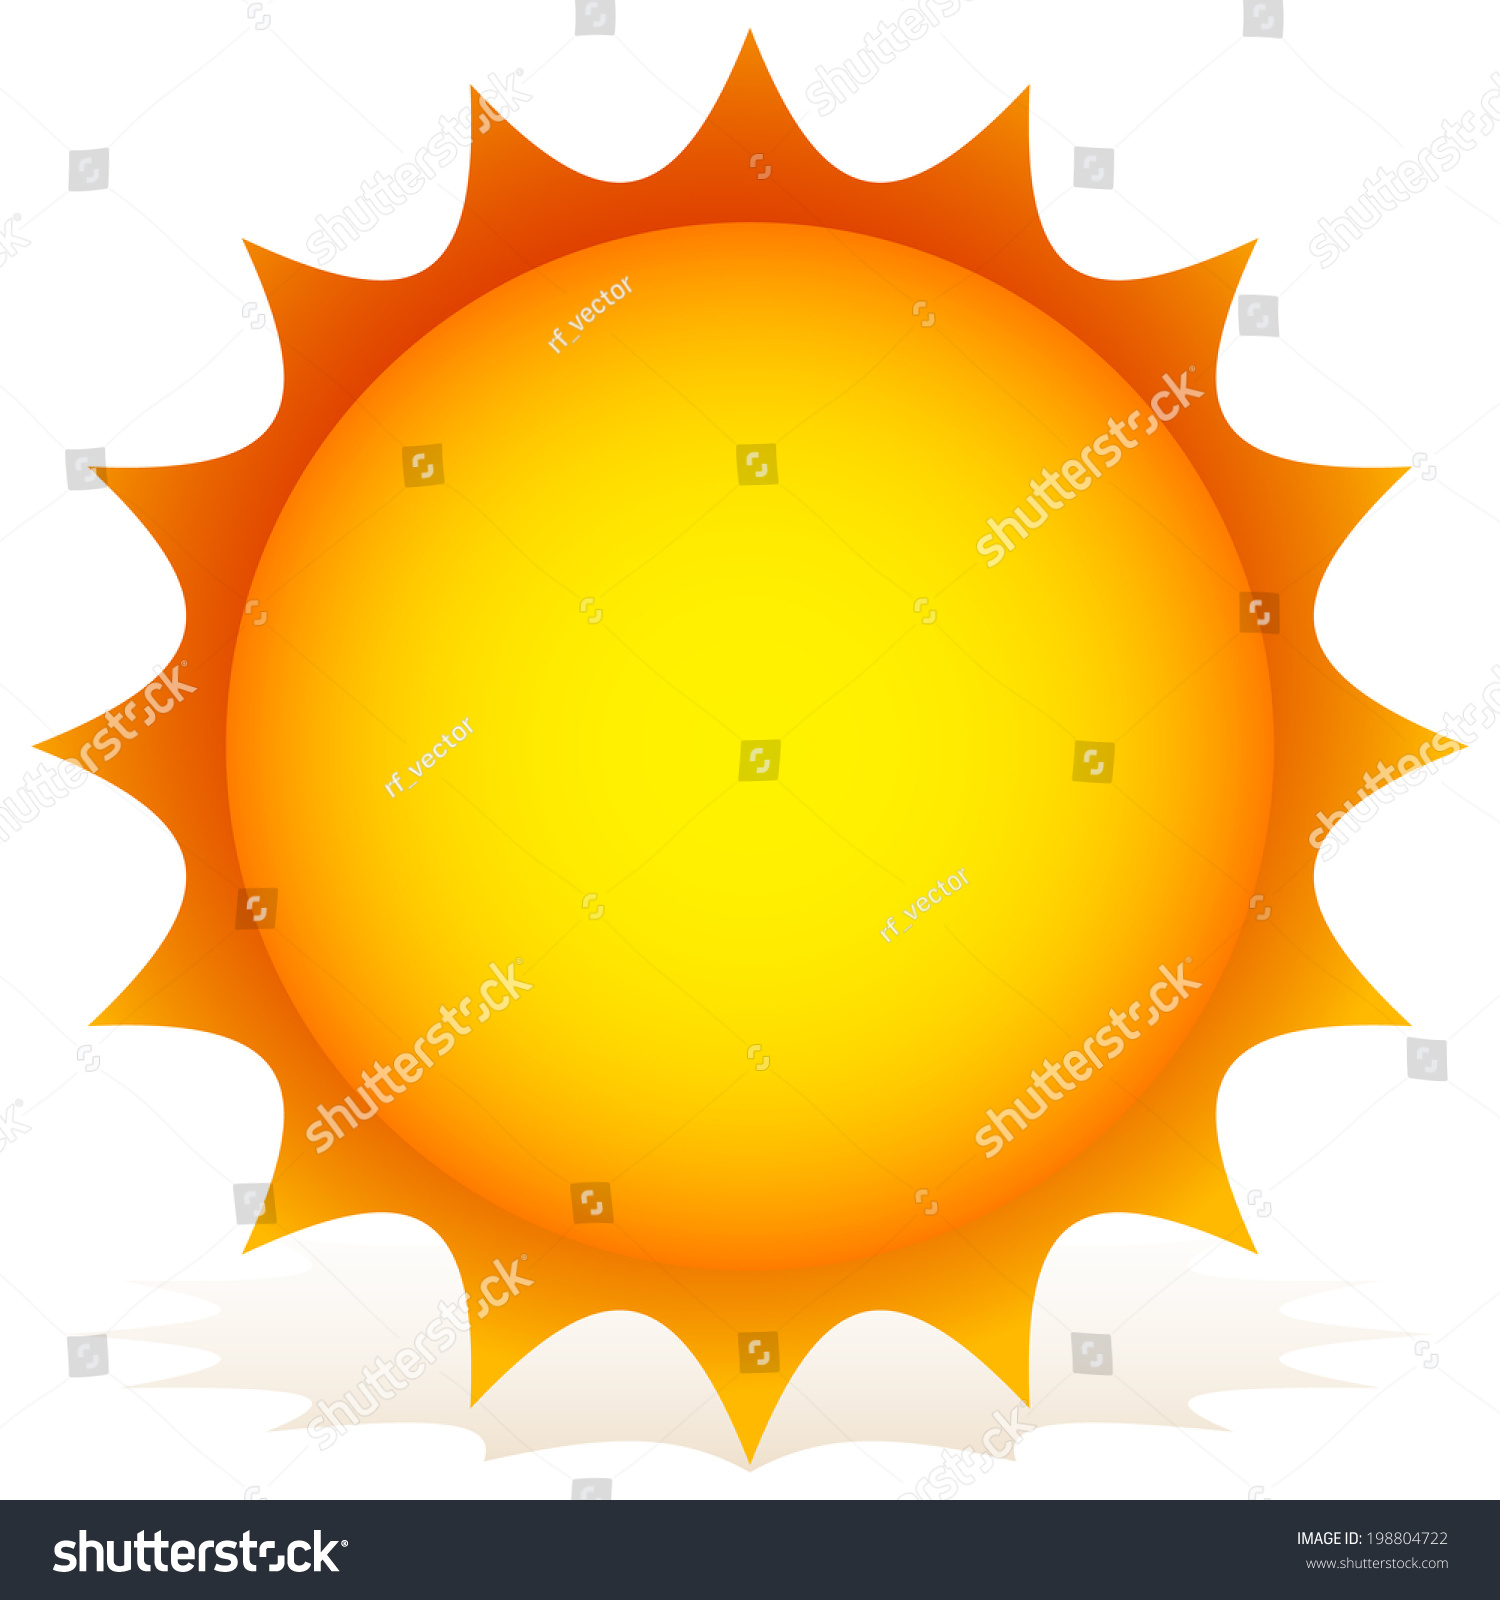 glossy sun clipart sun vector illustration stock photo photo rh shutterstock com direct sunlight clipart plants need sunlight clipart